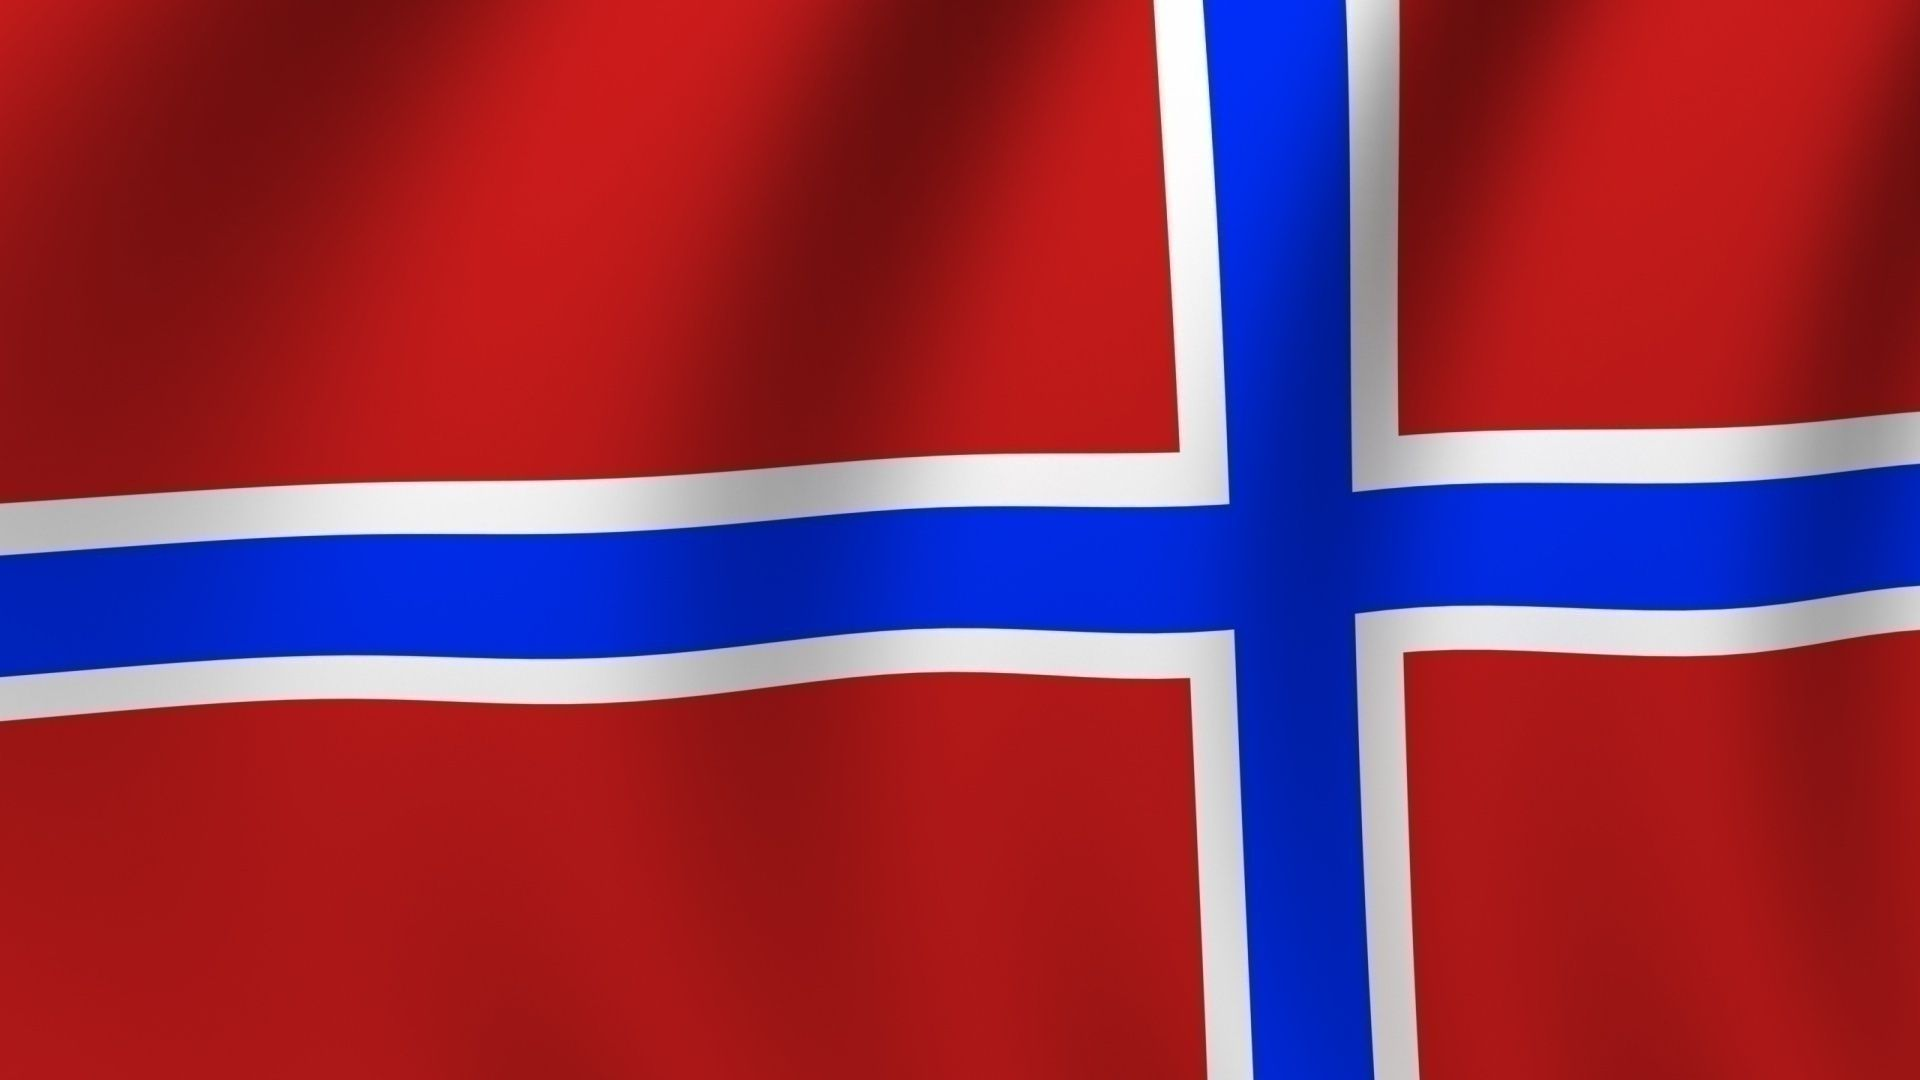 1920x1080 Norway Flag Wallpapers